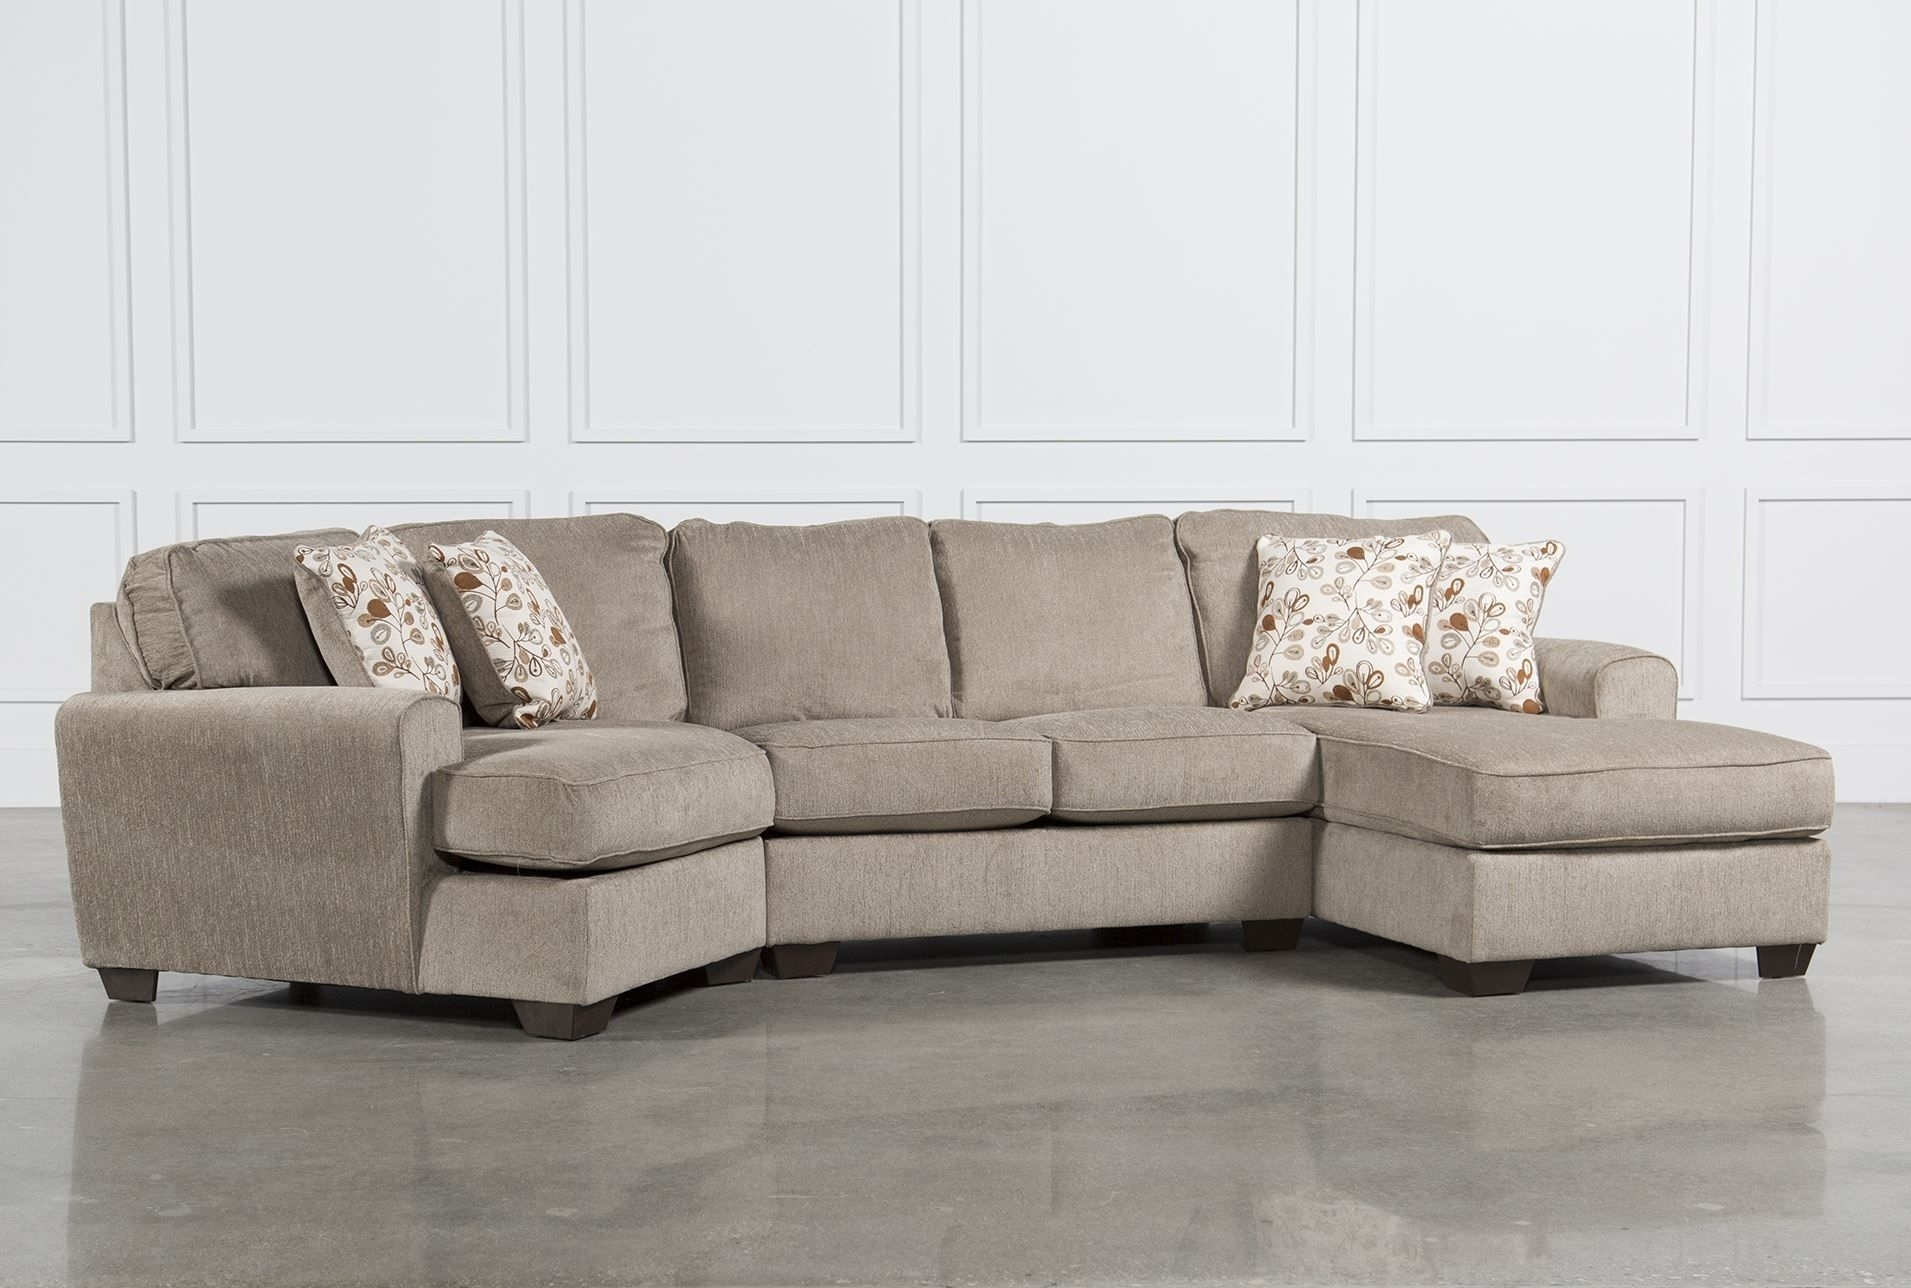 Eugene Oregon Sectional Sofas | Eugene Oregon Pertaining To Evan 2 Piece Sectionals With Raf Chaise (View 4 of 25)